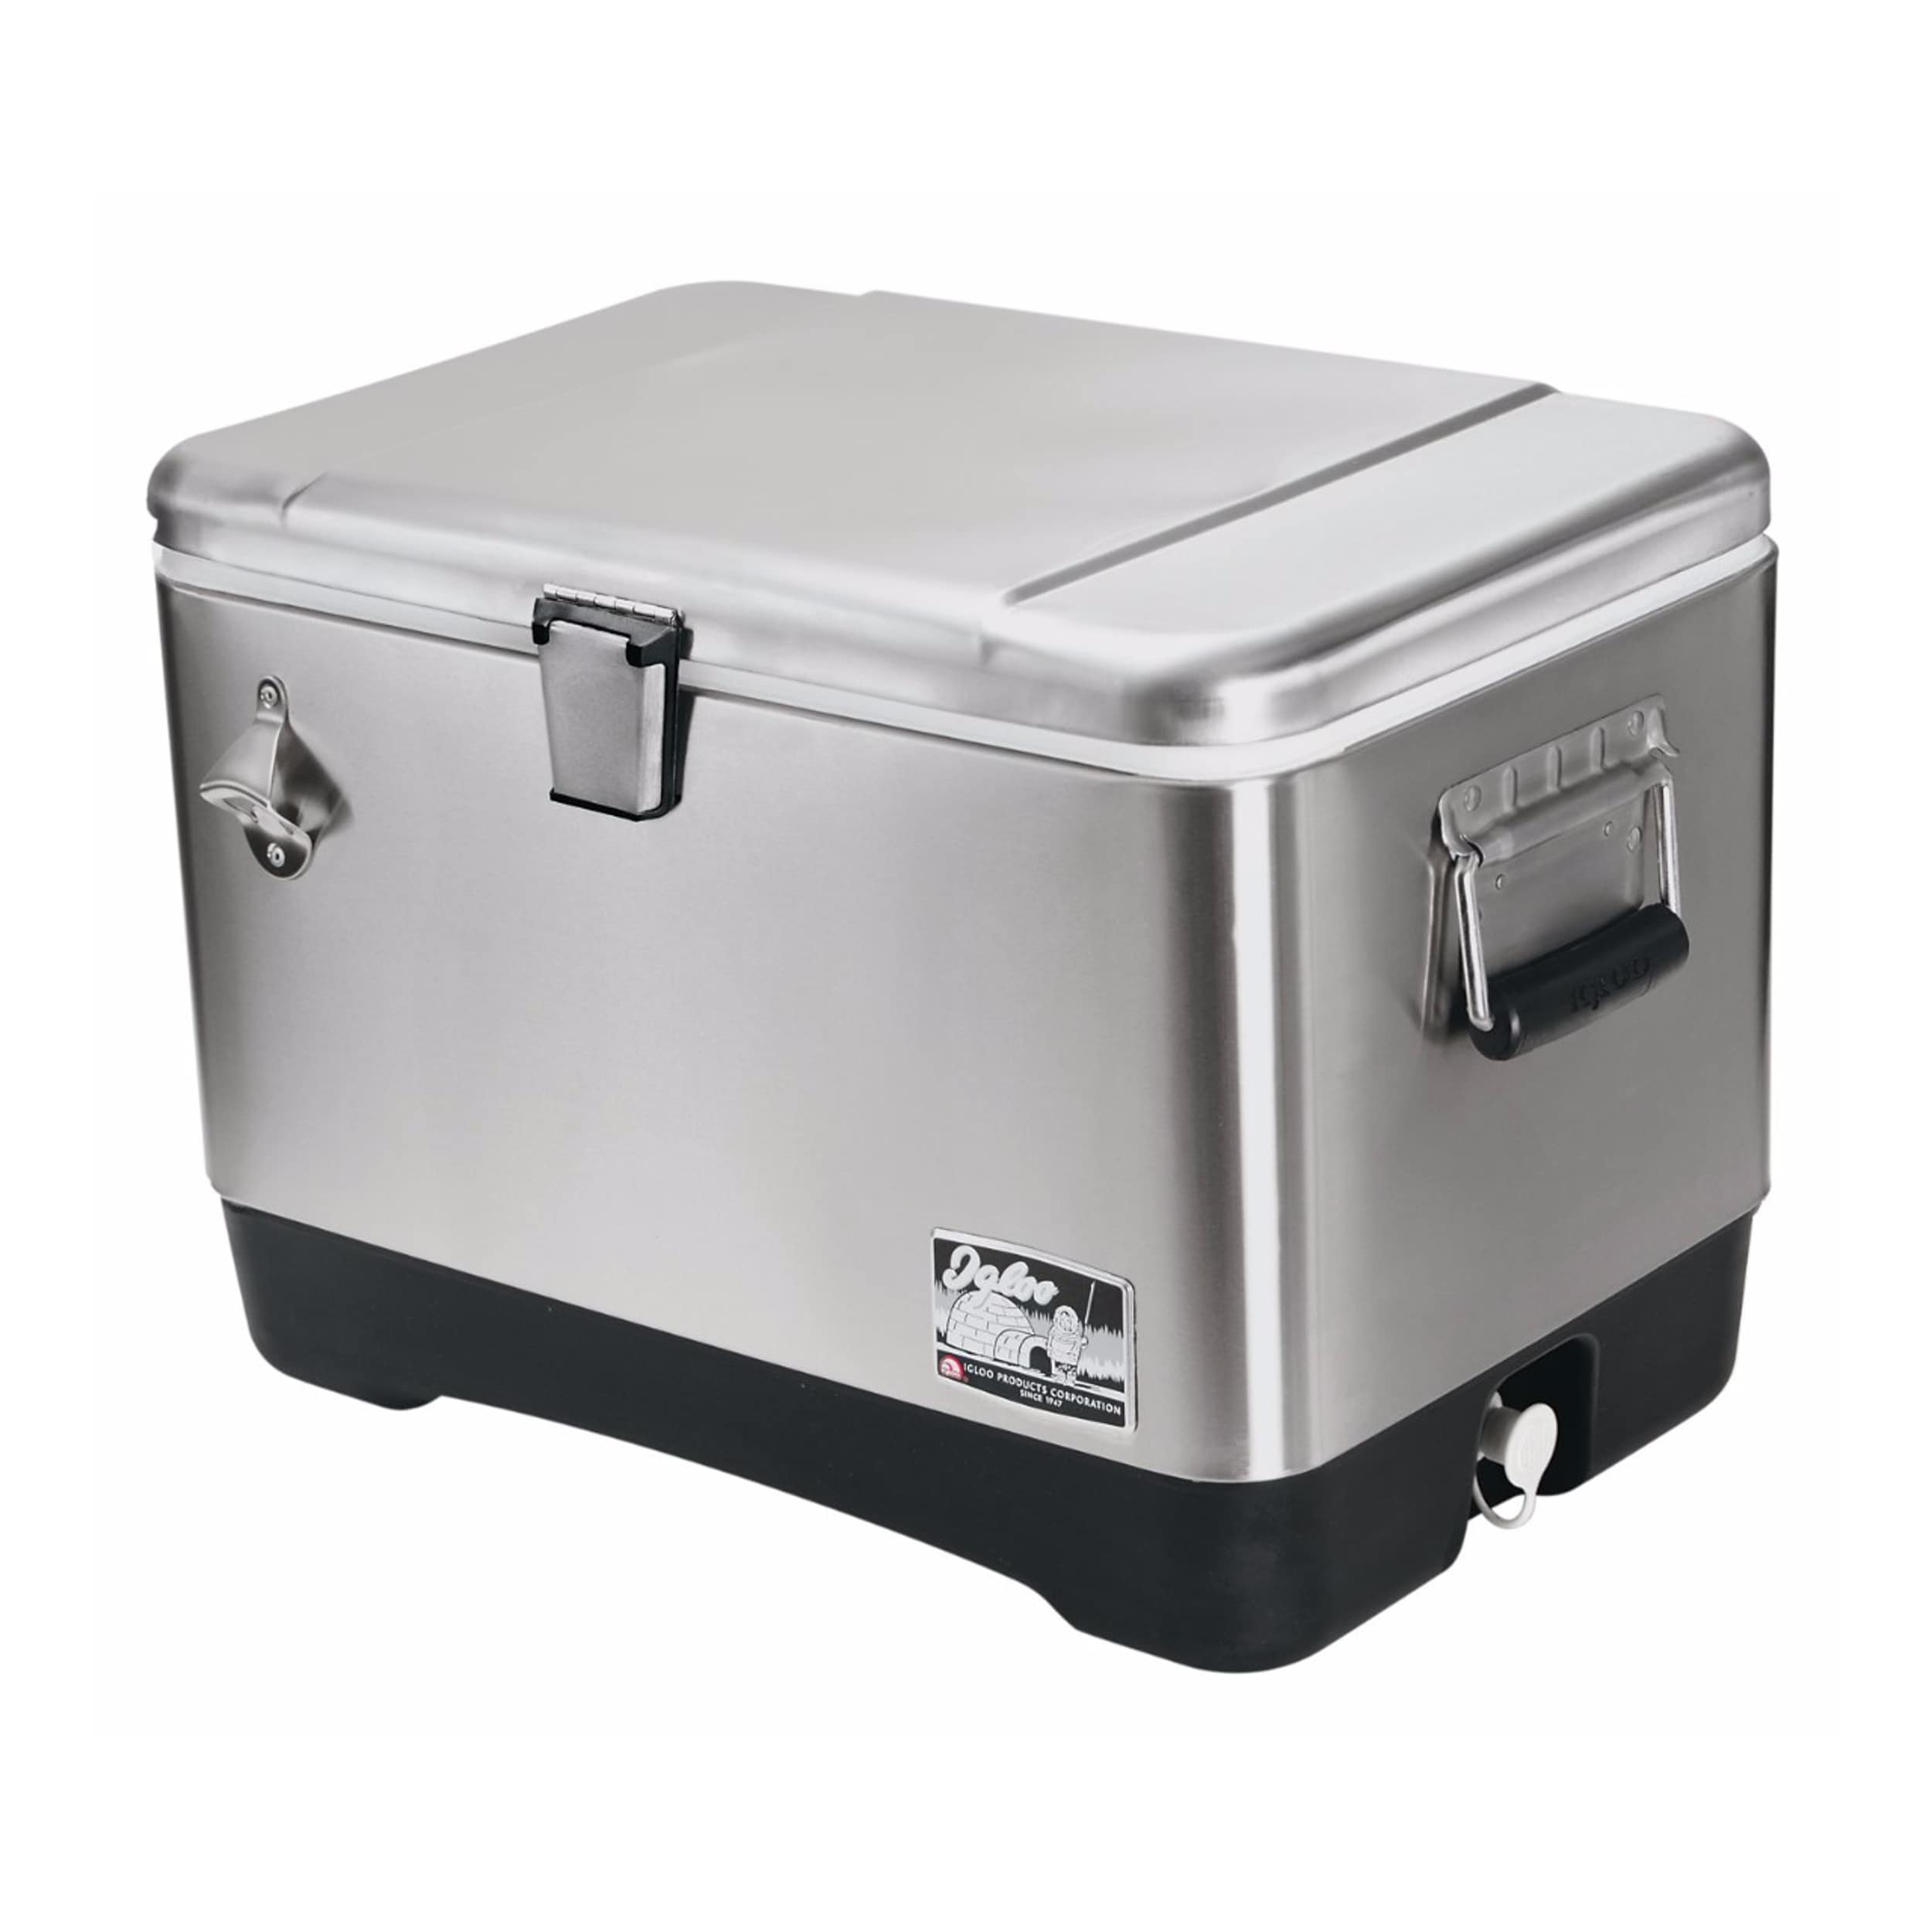 Igloo Stainless Steel (Silver) 54 Cooler